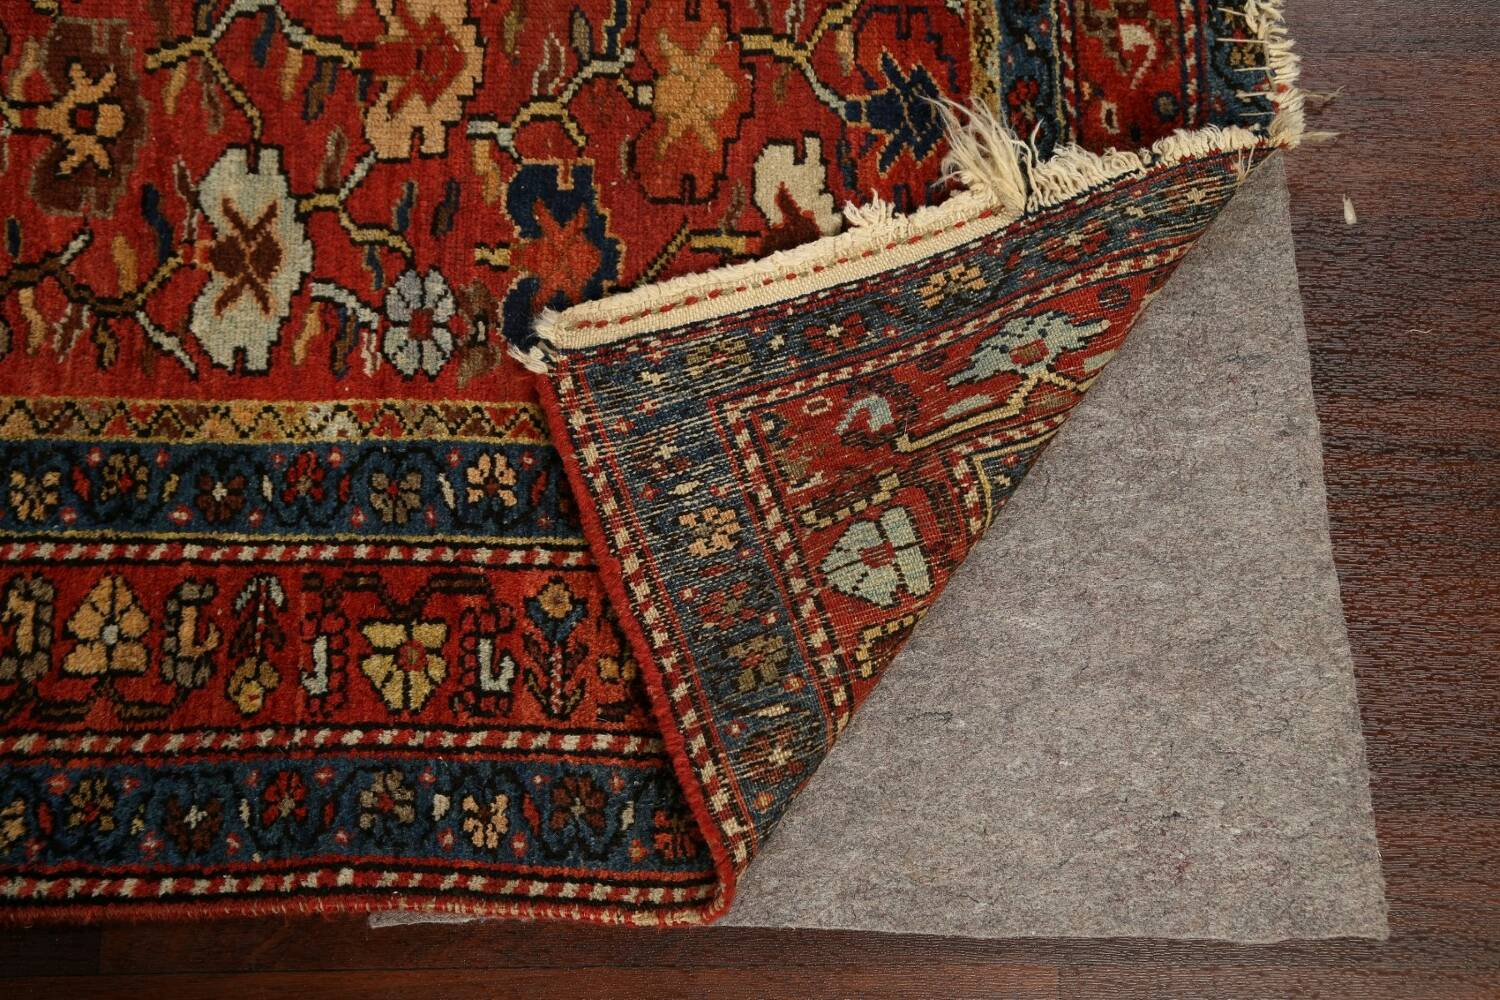 Pre-1900 Antique Vegetable Dye Sultanabad Persian Area Rug 5x10 image 7